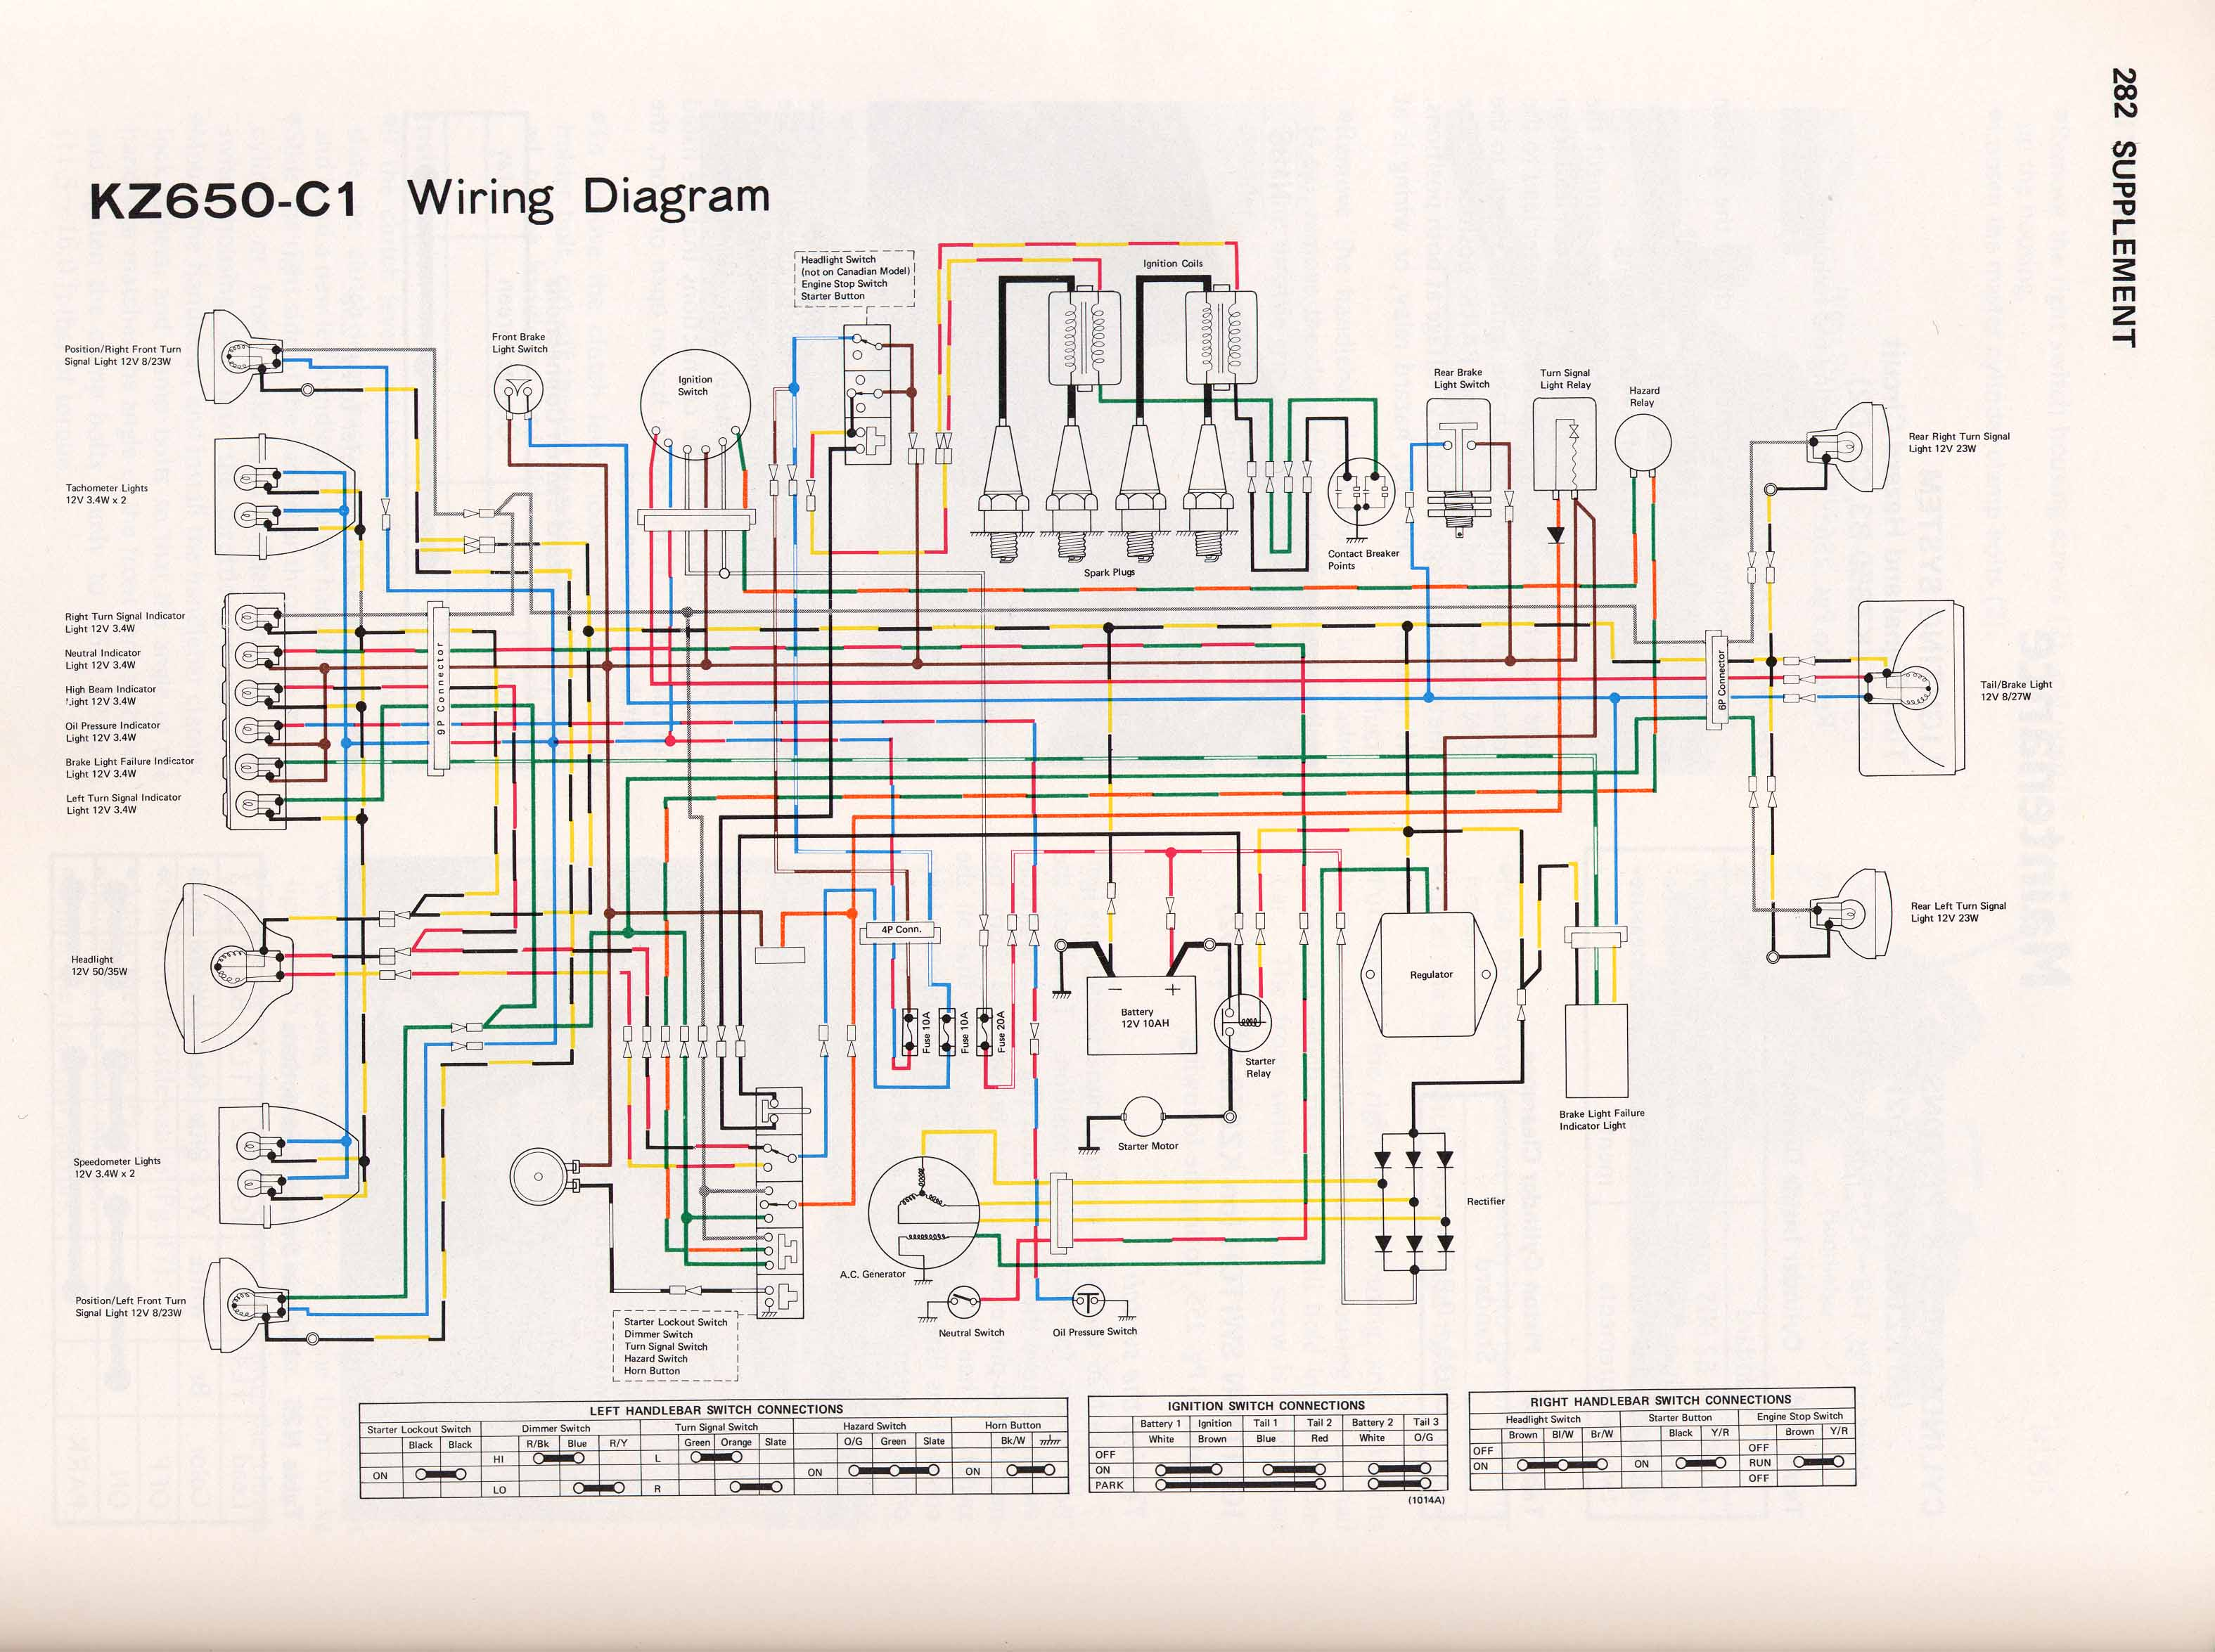 KZ650 C1 kz650 info wiring diagrams 1978 kz650 wiring harness at crackthecode.co